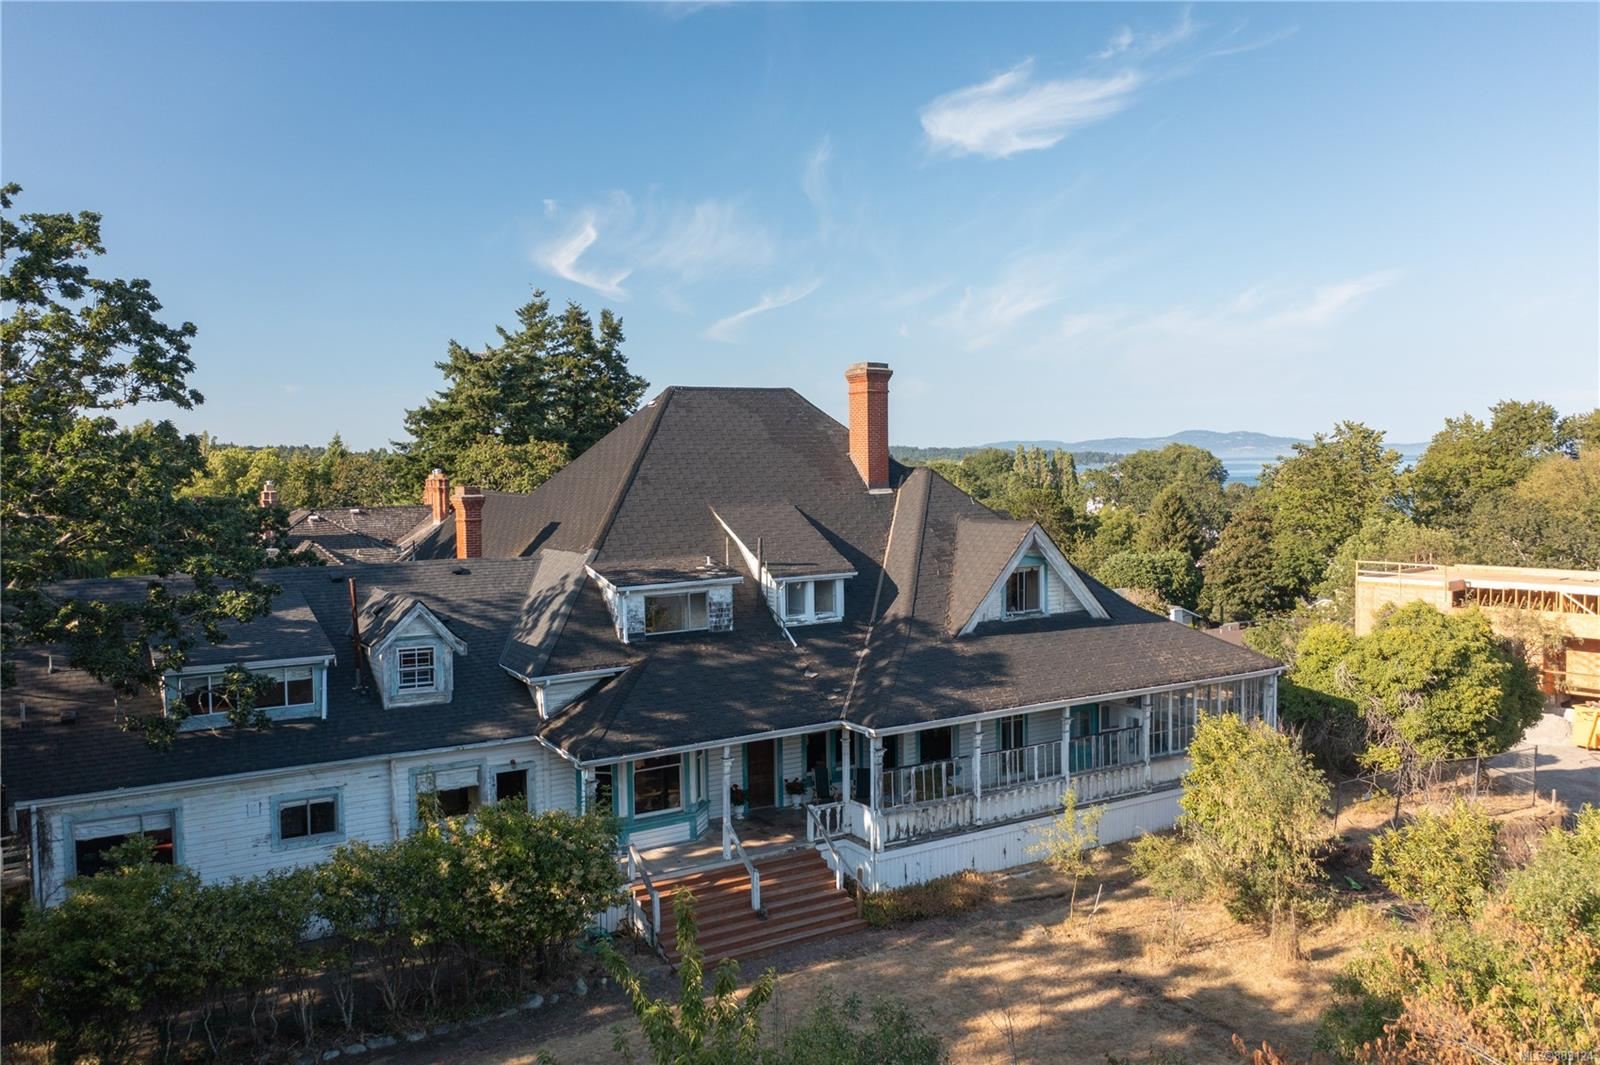 """A rare opportunity to take a piece of history and make it your own. Available for the first time in more than 40 years, 1587-1595 York Pl is considered to be one of the most significant surviving historic properties in Oak Bay. """"Annandale"""" was designed by late architect John G. Tiarks for Sir Charles Hibbert Tupper, son of Sir Charles Tupper, the Father of Confederation. Stunning original rock walls constructed of granite set the tone for this show stopping property. This custom-home consisting of over 7,300 sqft is dripping with history, whimsy, & opportunity. The property is a legal non-conforming Duplex, and has potential for subdivision (buyer to verify). This grand & gracious home is located on one of Oak Bay's most desirable no-through streets in an unbeatable location, mere steps from Oak Bay Avenue and amazing restaurants, a short distance to the beach and exceptional schools, Oak Bay Marina, and Victoria Golf Club. Don't wait on this truly unique opportunity."""